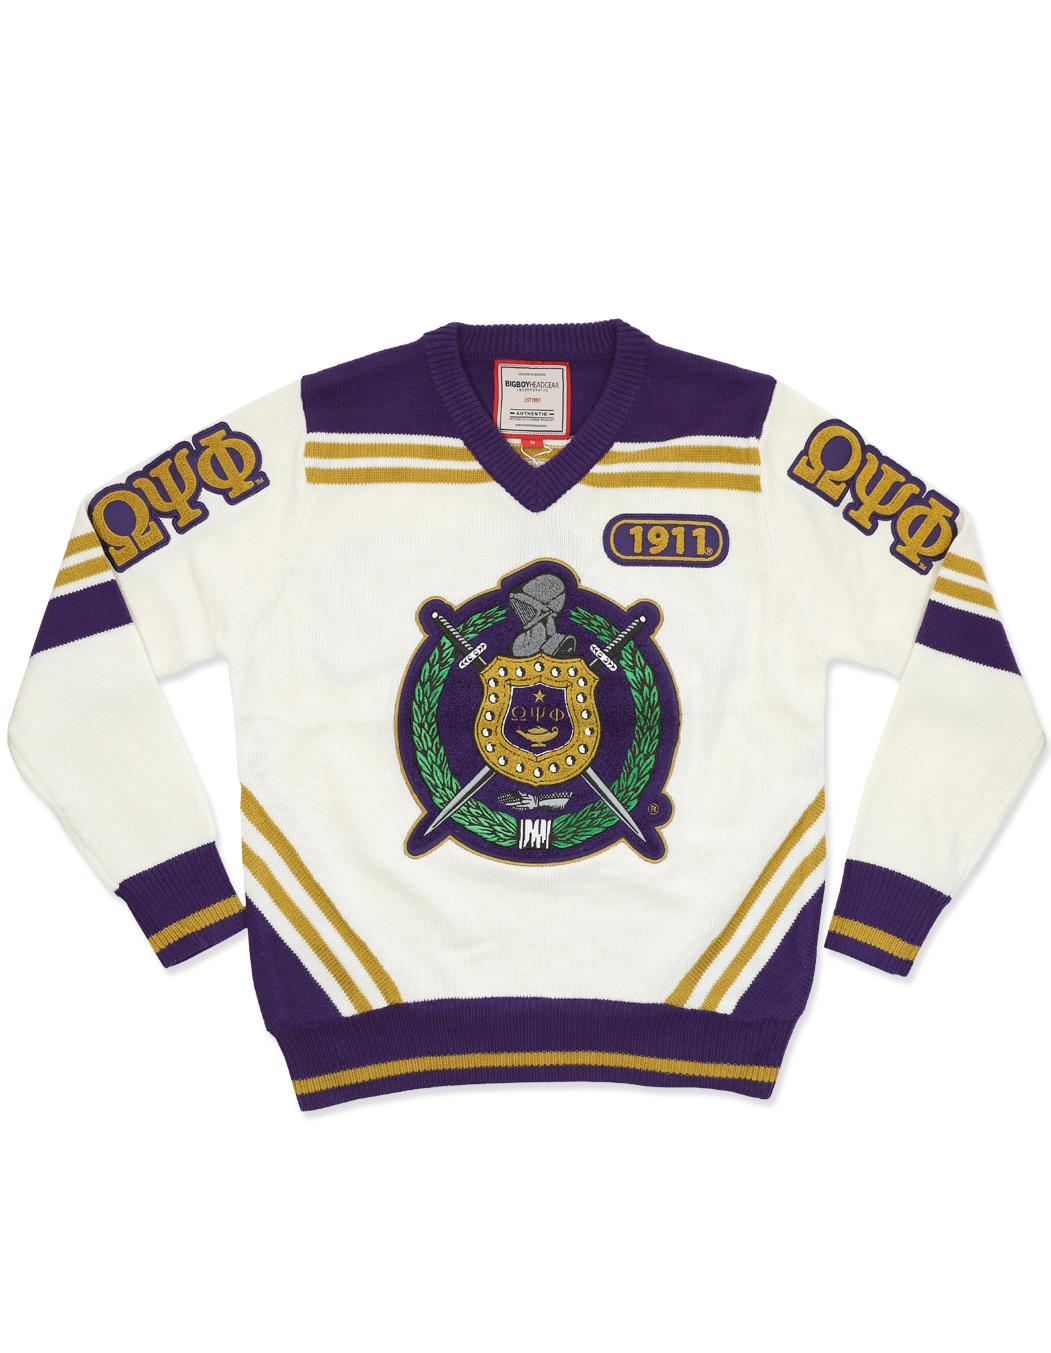 Omega Psi Phi apparel Sweater V neck white